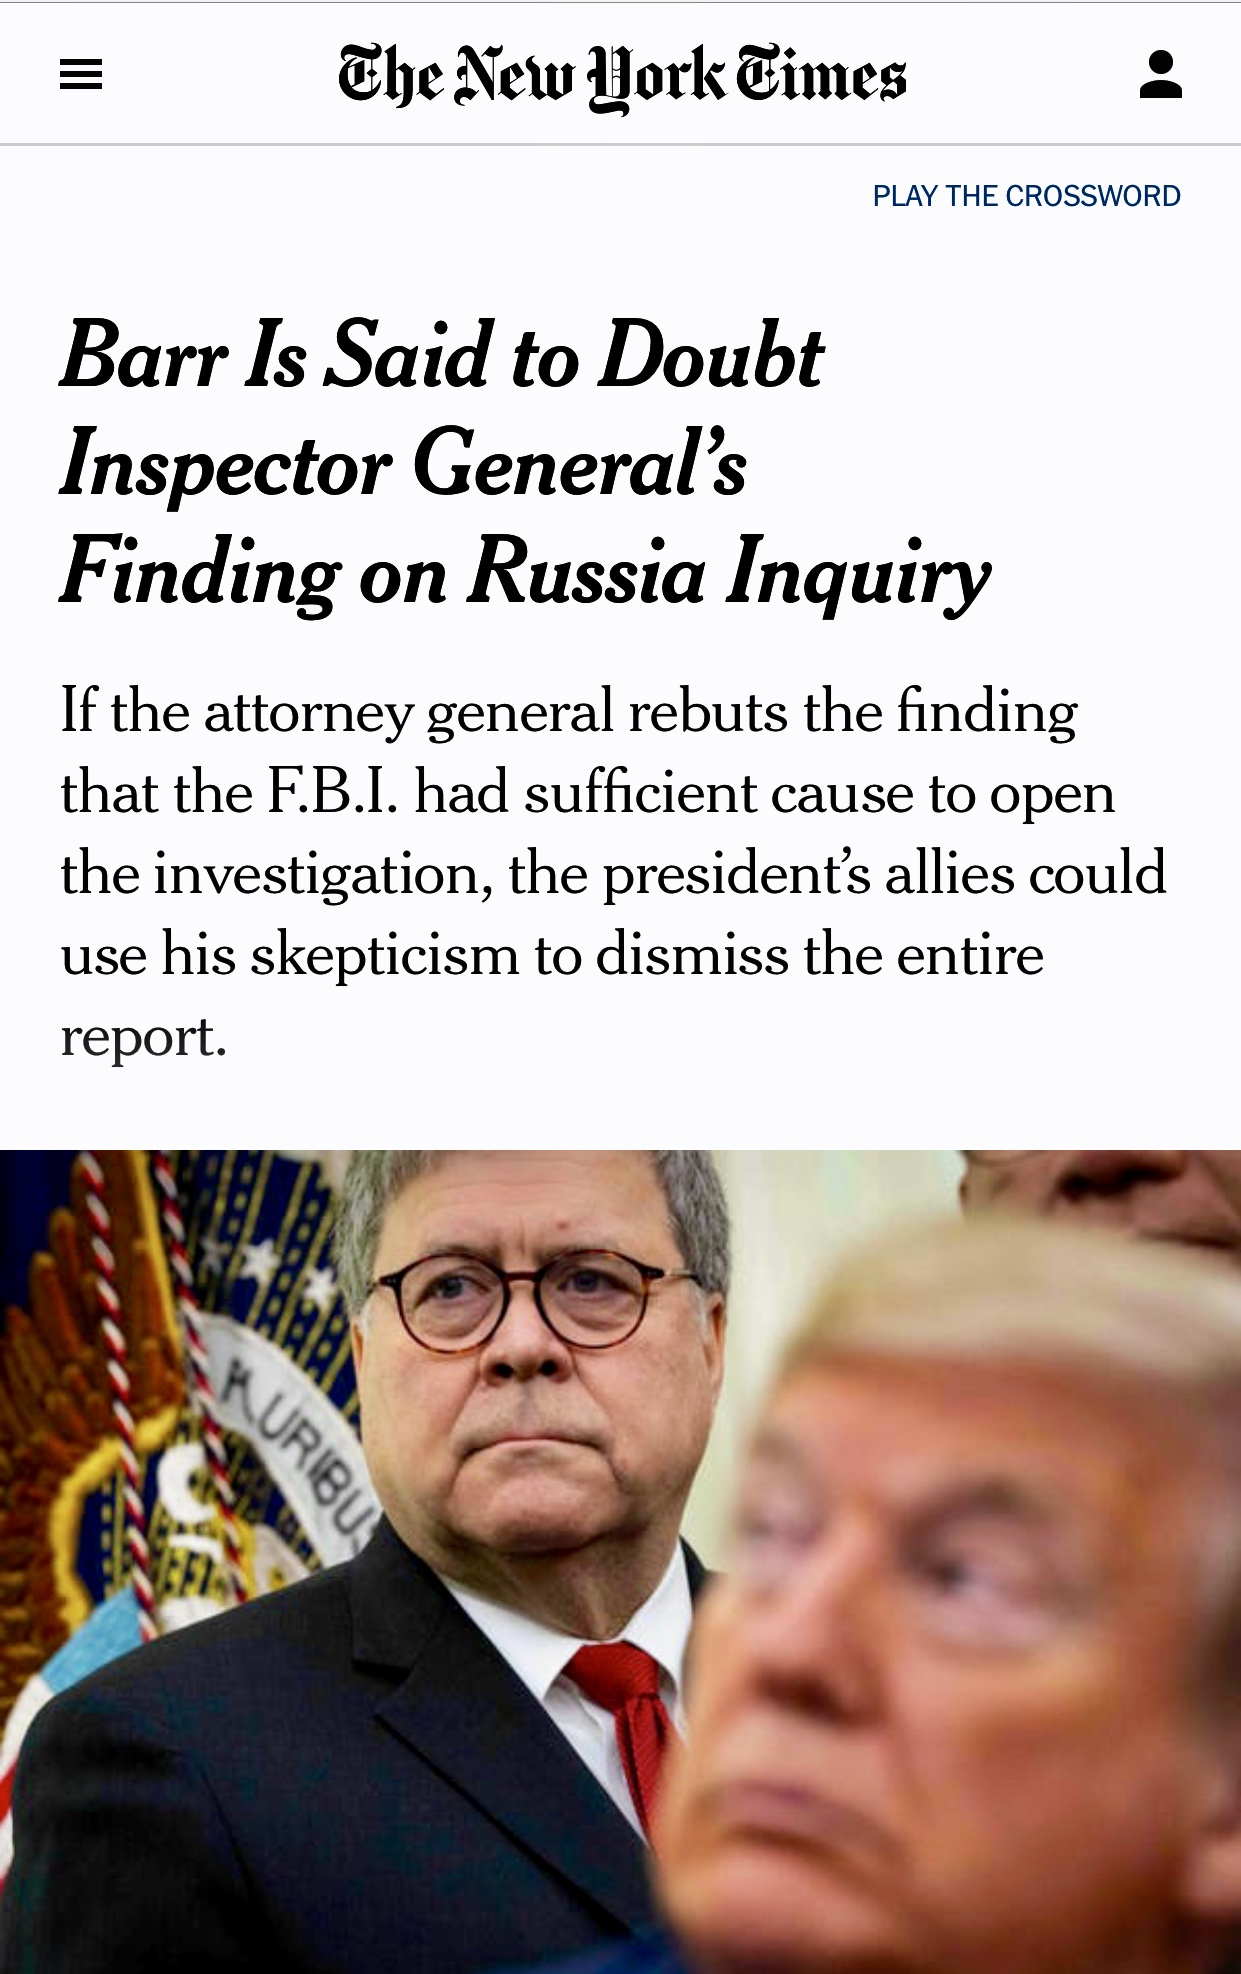 Barr Is Said to Doubt Inspector General's Finding on Russia Inquiry